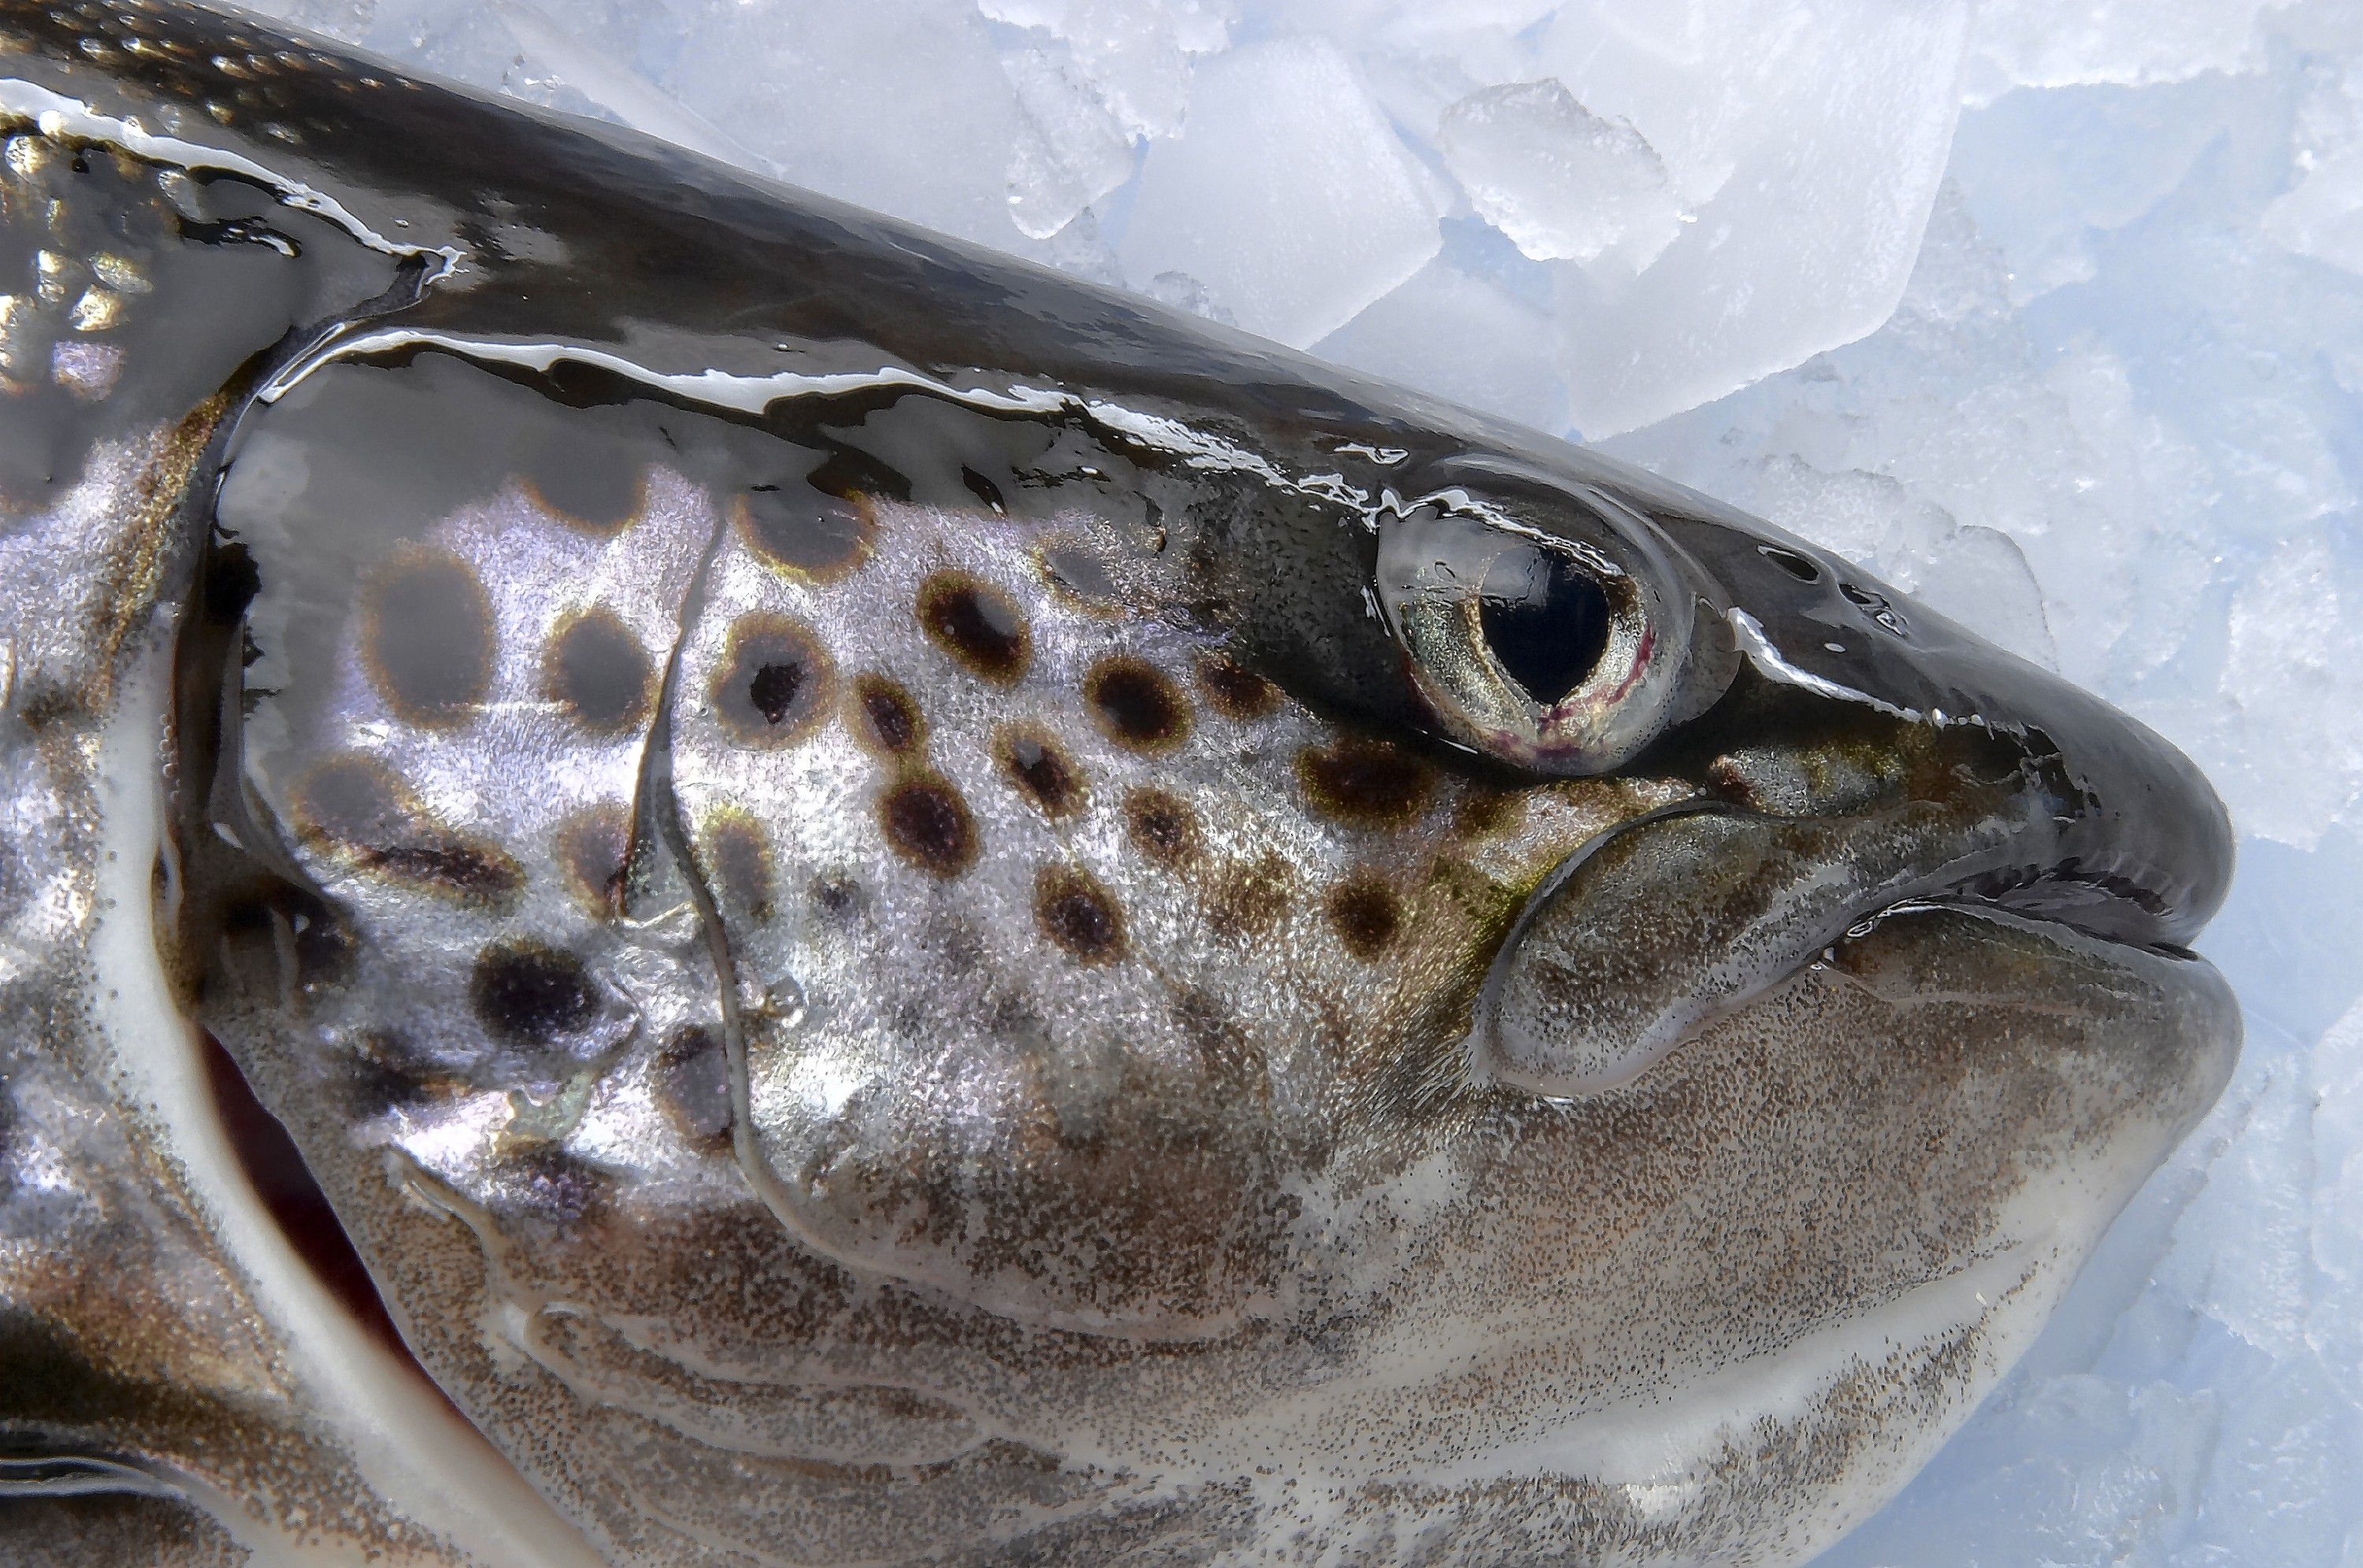 So Long, Salmon! Atlantic salmon are spawning in the CT River, but